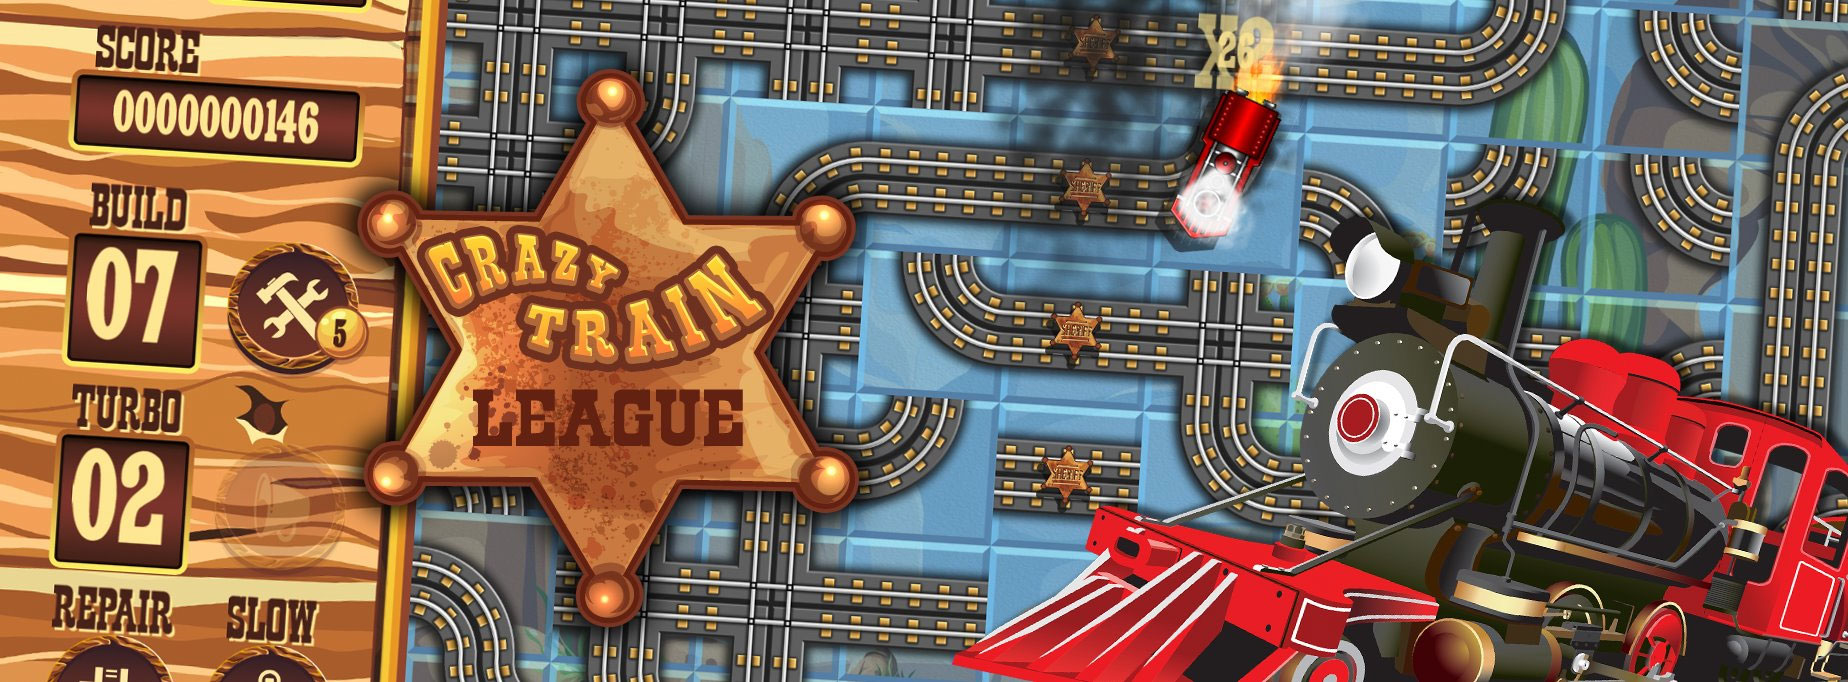 crazy train league puzzle